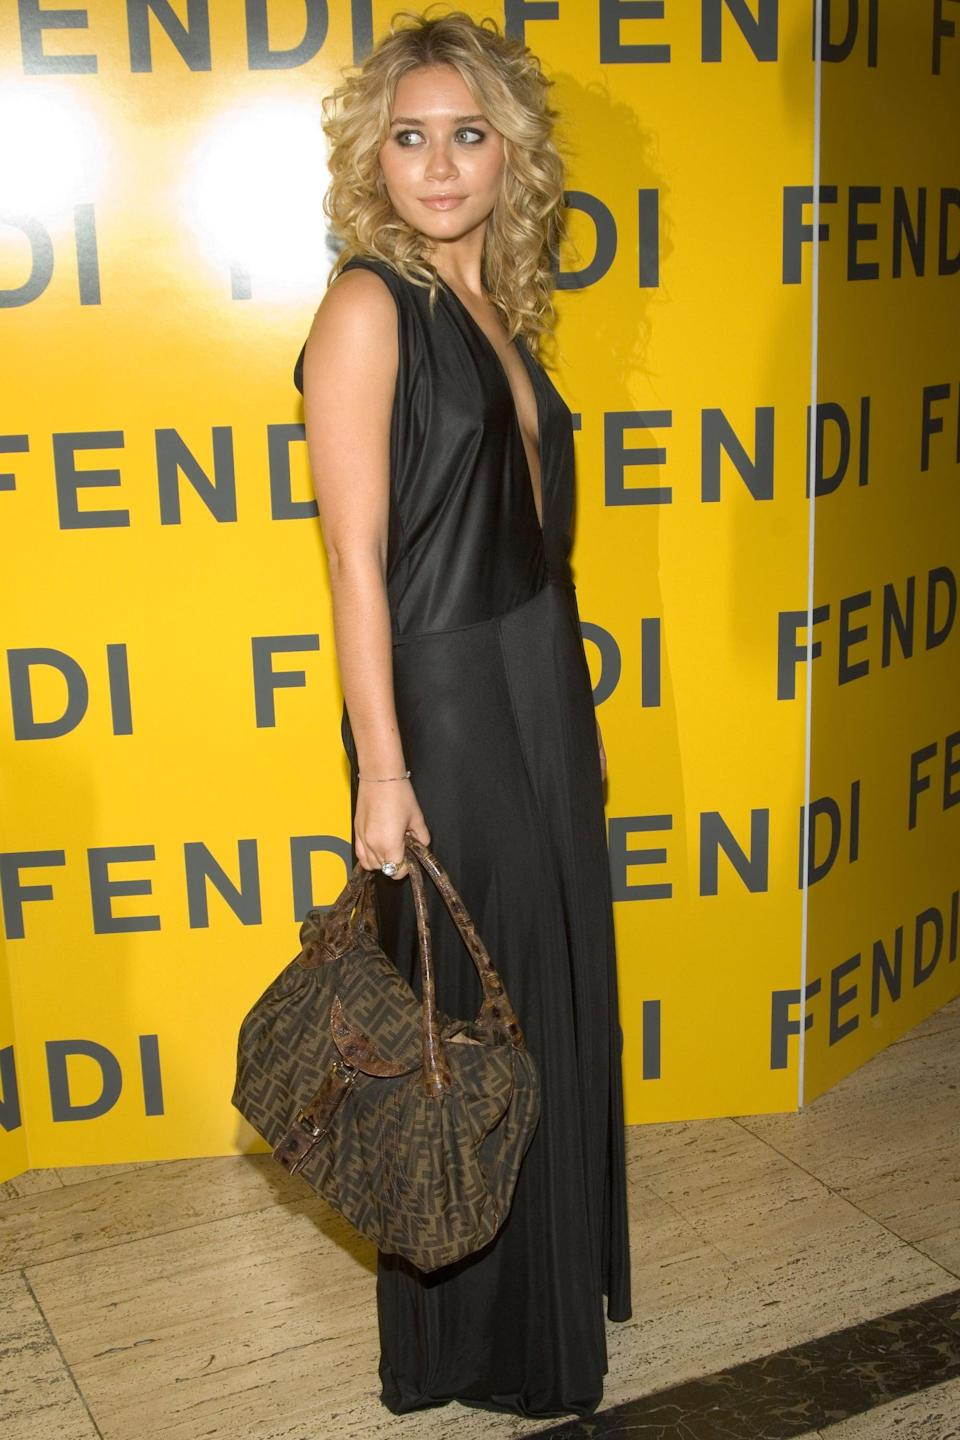 <p>Fendi printed totes were chic enough for the Olsens, and Carrie Bradshaw made that fancy baguette option famous. </p>